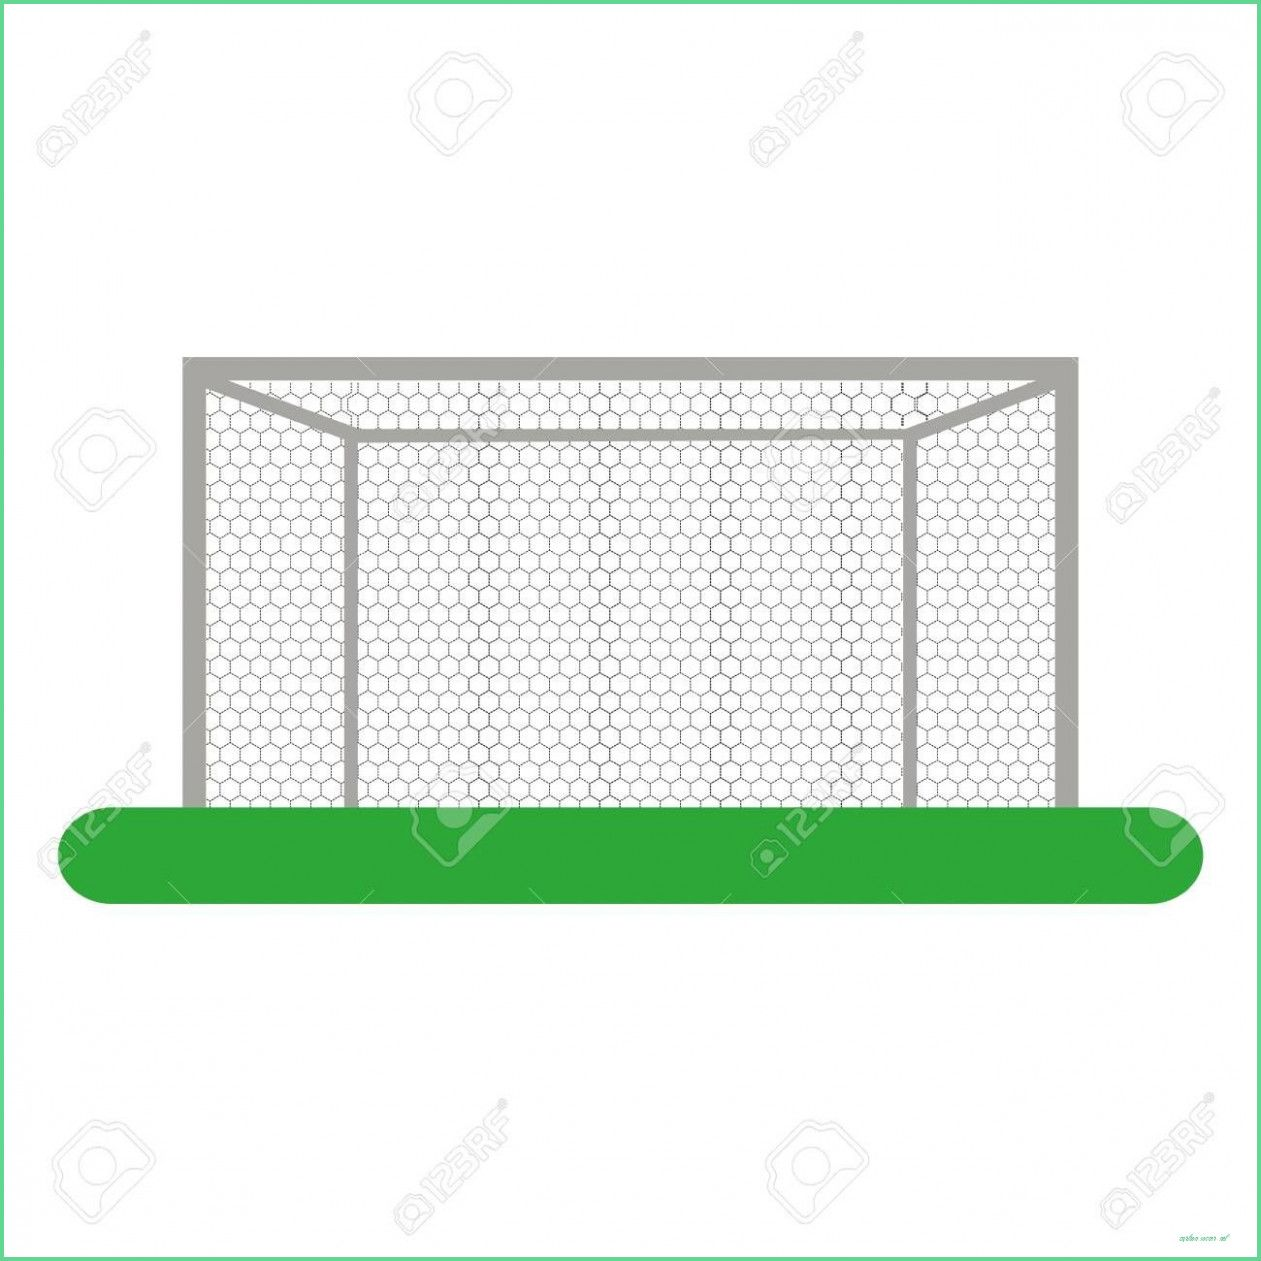 Now Is The Time For You To Know The Truth About Cartoon Soccer Net Cartoon Soccer Net Https In 2020 Soccer Drawing Football Coloring Pages Photography Backdrop Stand